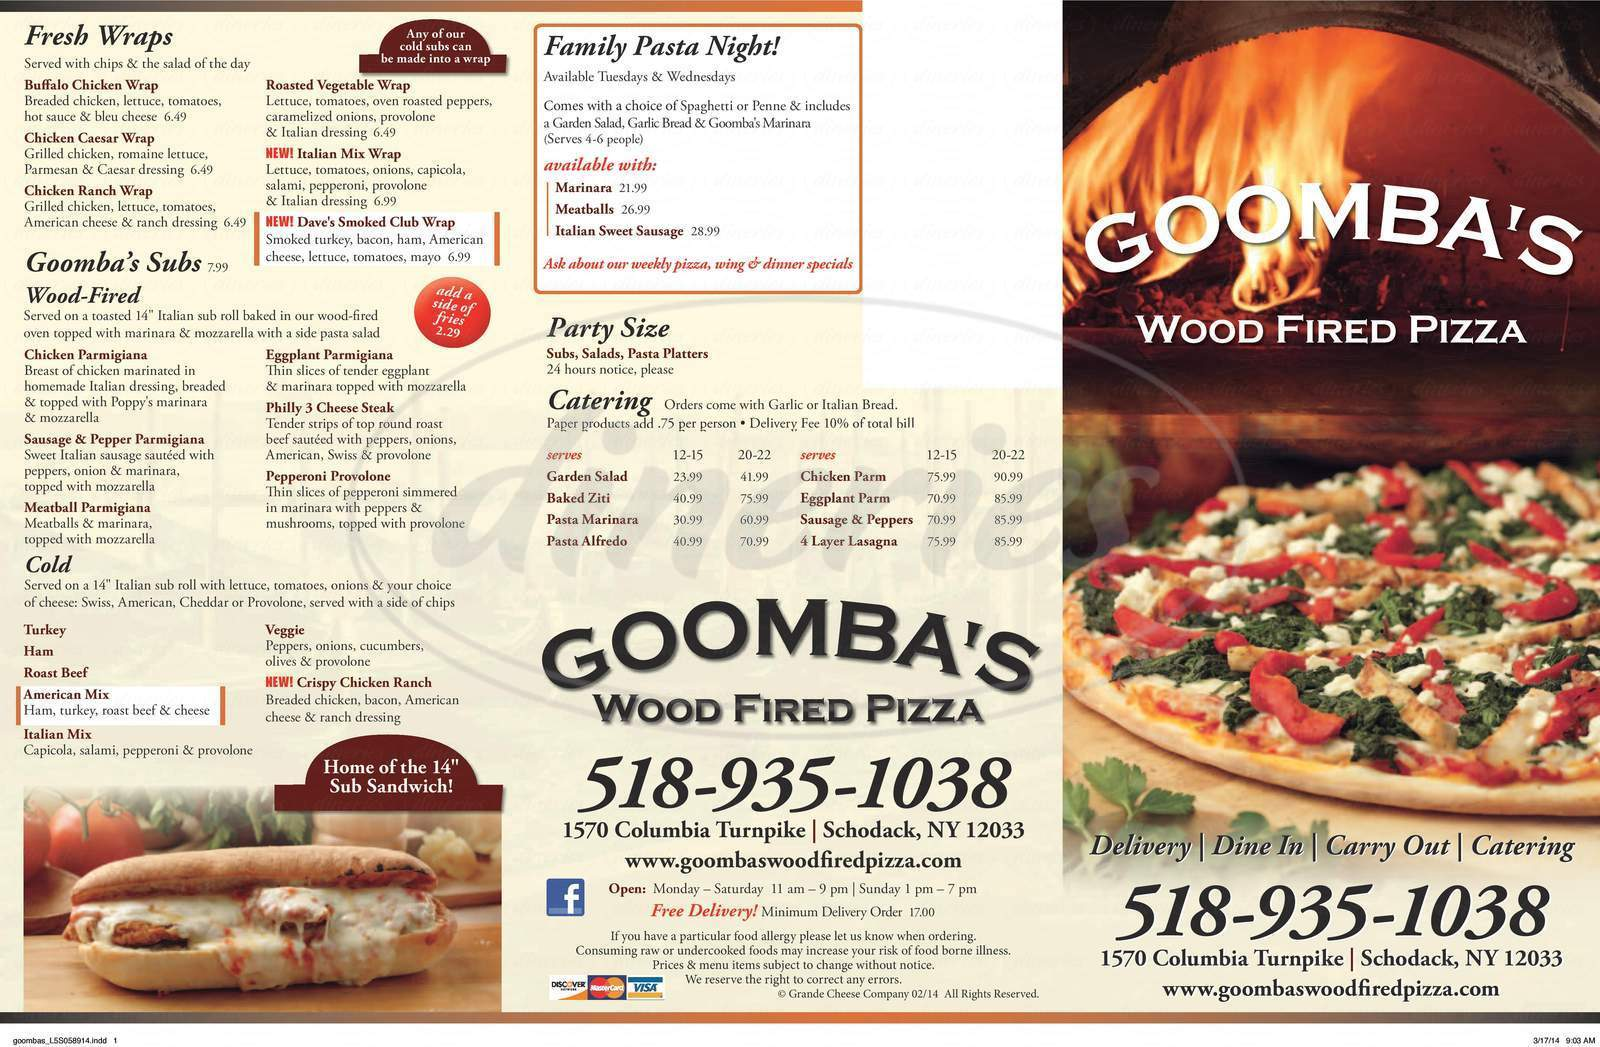 menu for Goomba's Wood Fired Pizza